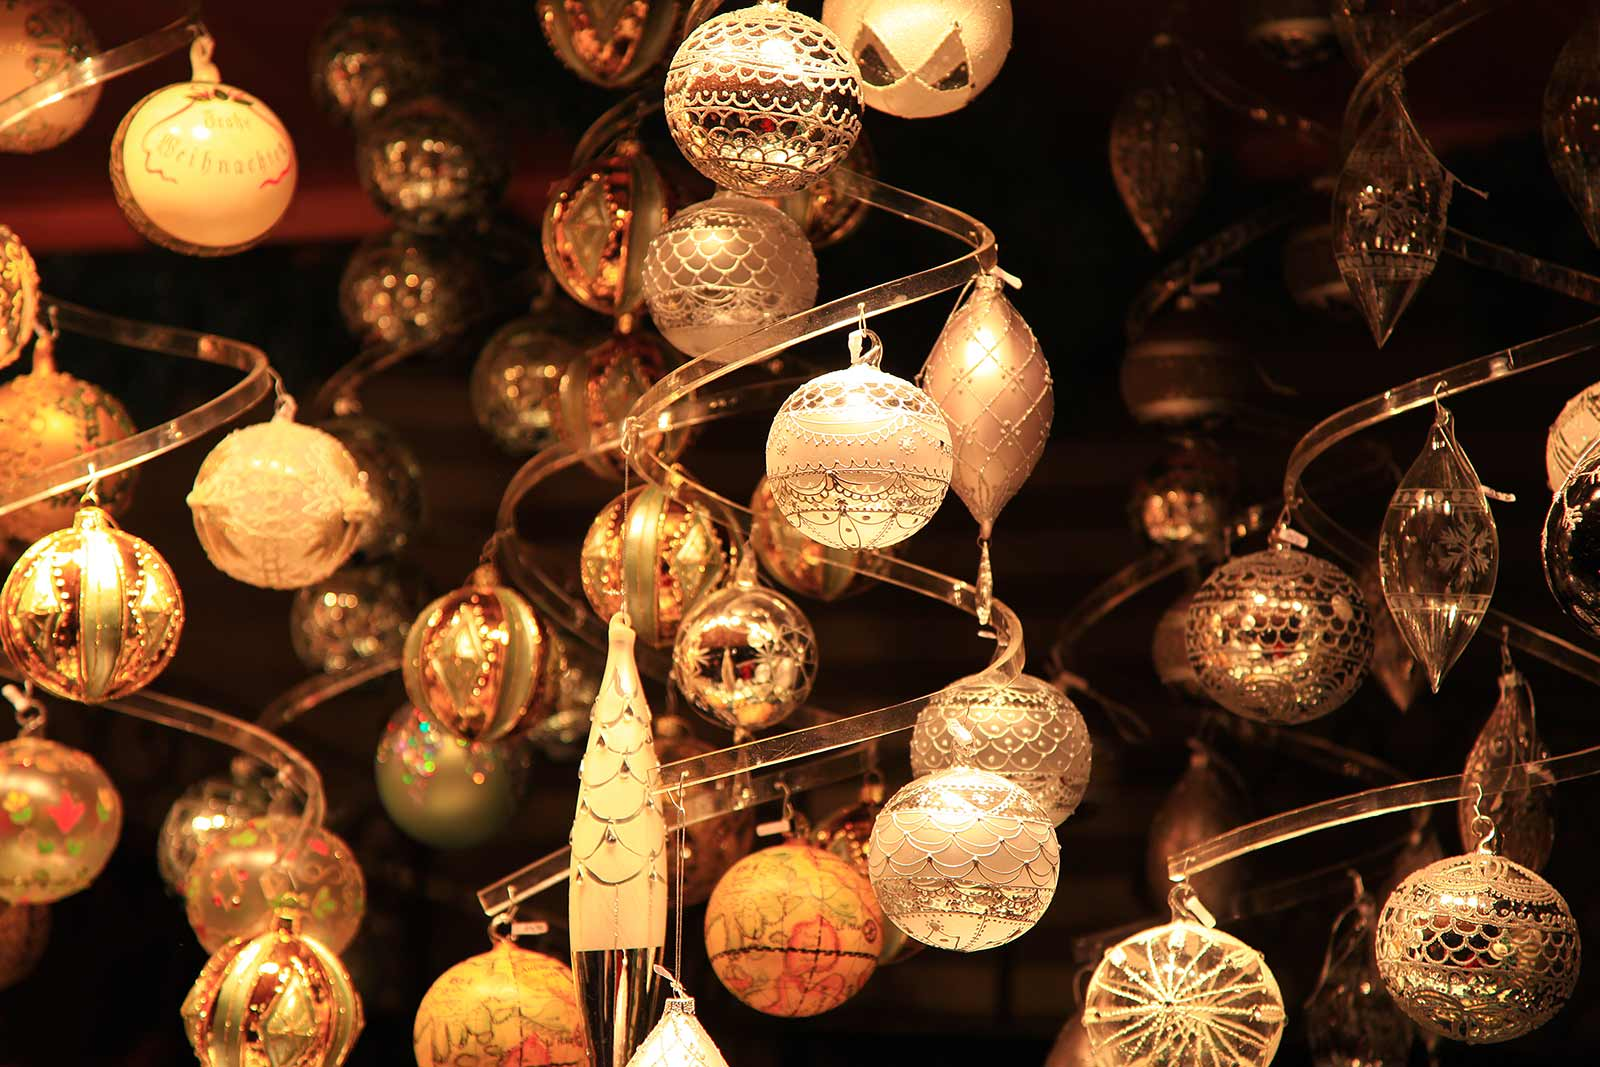 You can buy your Christmas balls at the markets (if you have the cash).